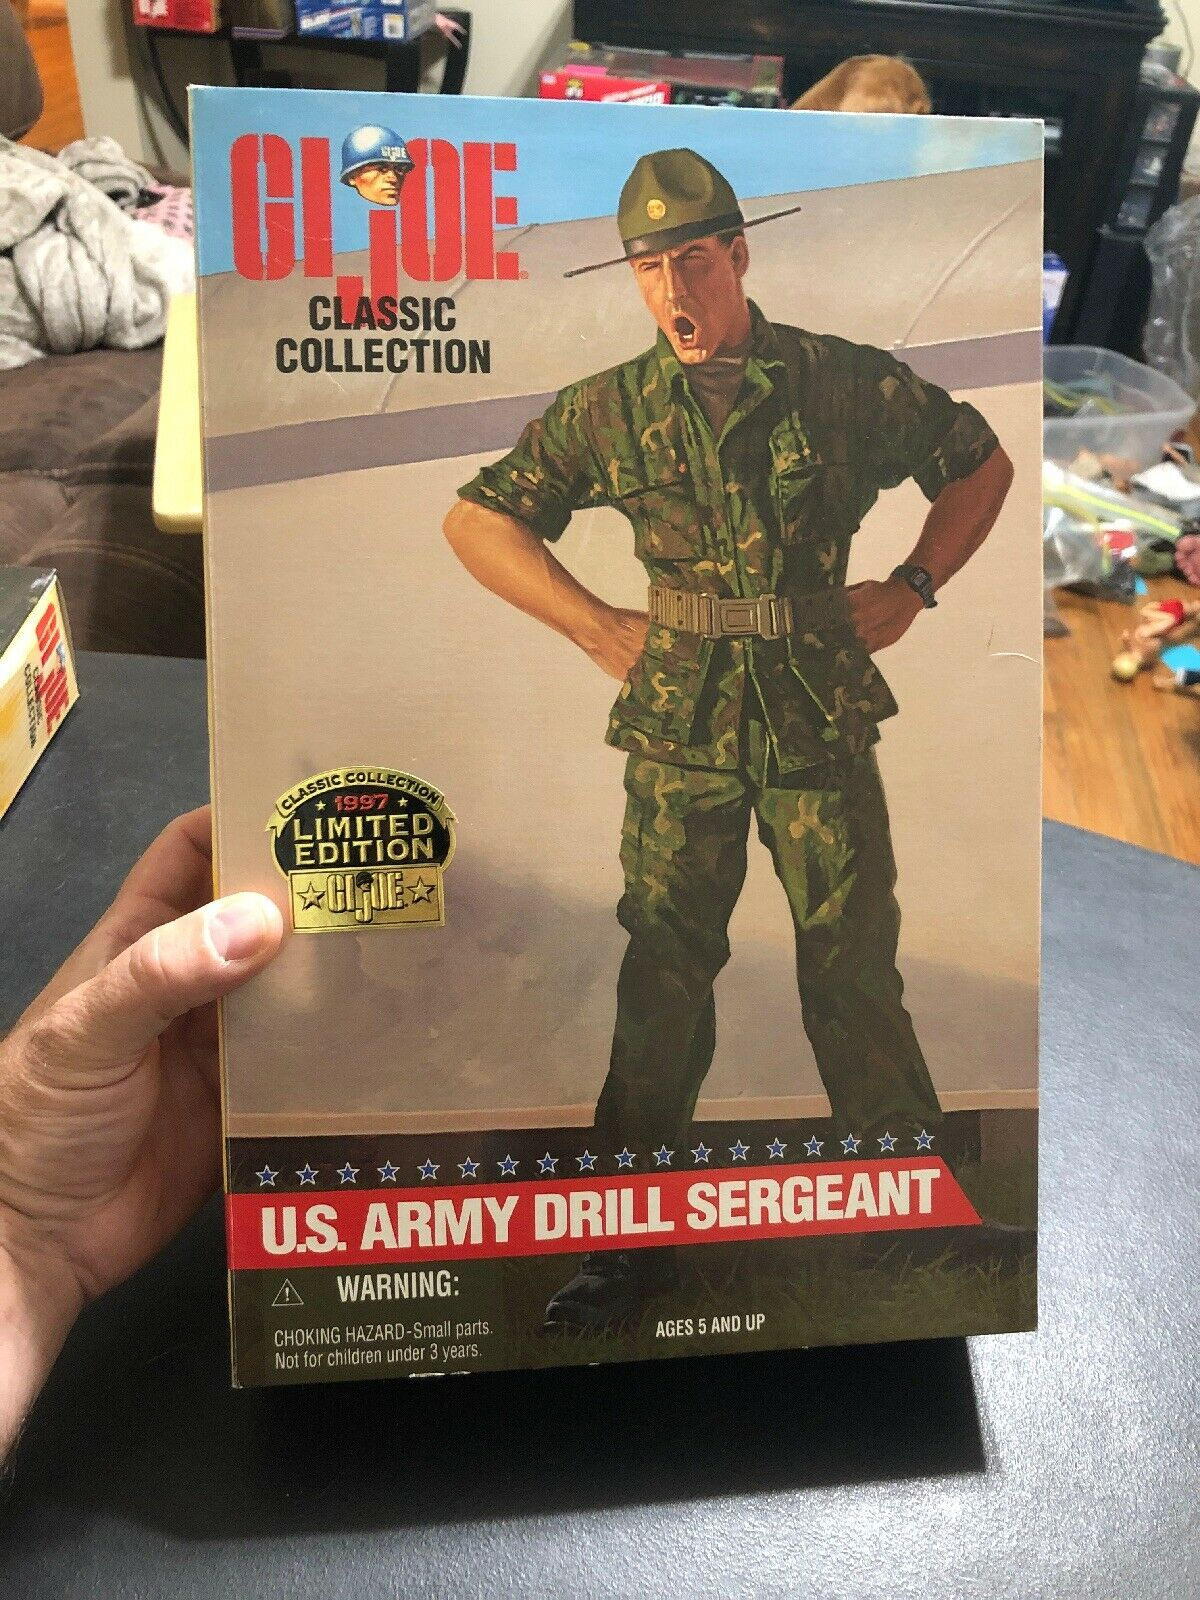 GI JOE US ARMY DRILL SERGEANT classeeic Collection cifra  African American  Felice shopping